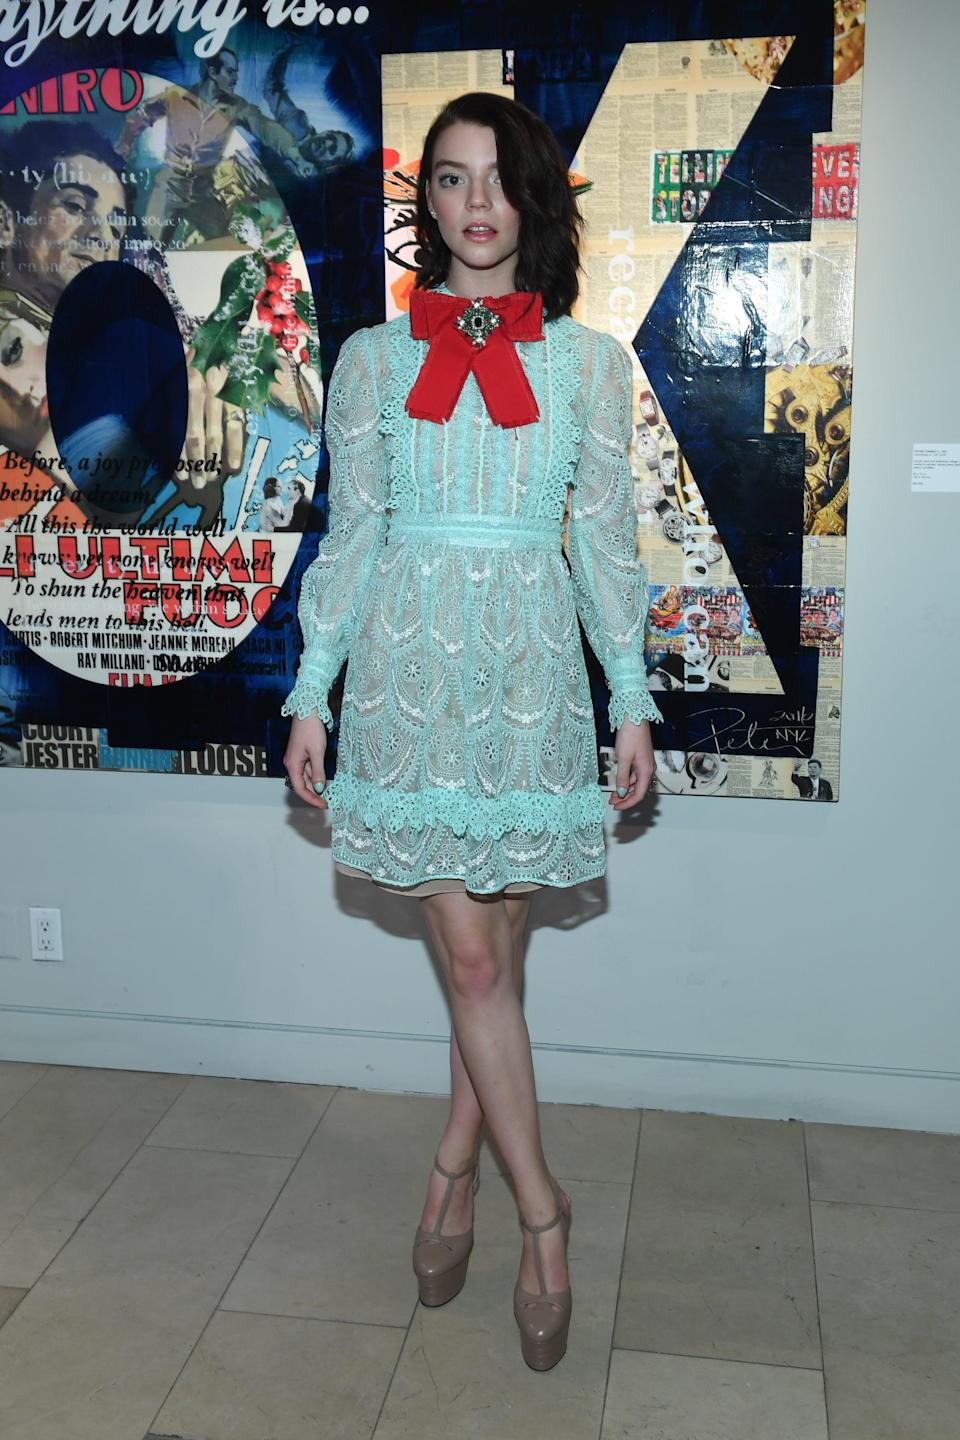 <p>Anya wore a turquoise lace Gucci dress with a red bow at the neck.</p>